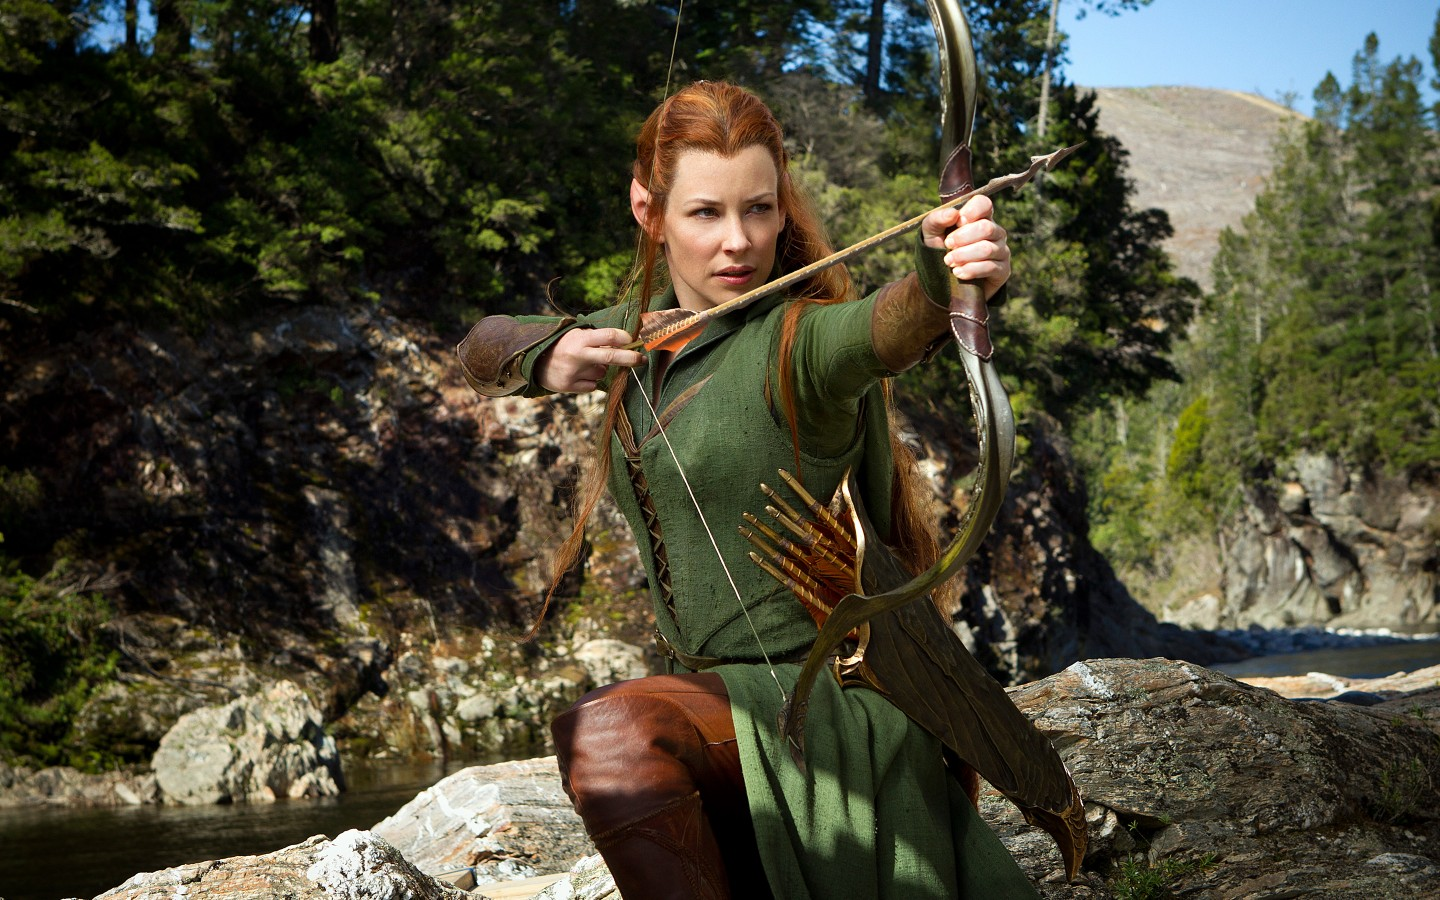 Cute Iron Man Wallpapers Evangeline Lilly As Tauriel In Hobbit Wallpapers Hd